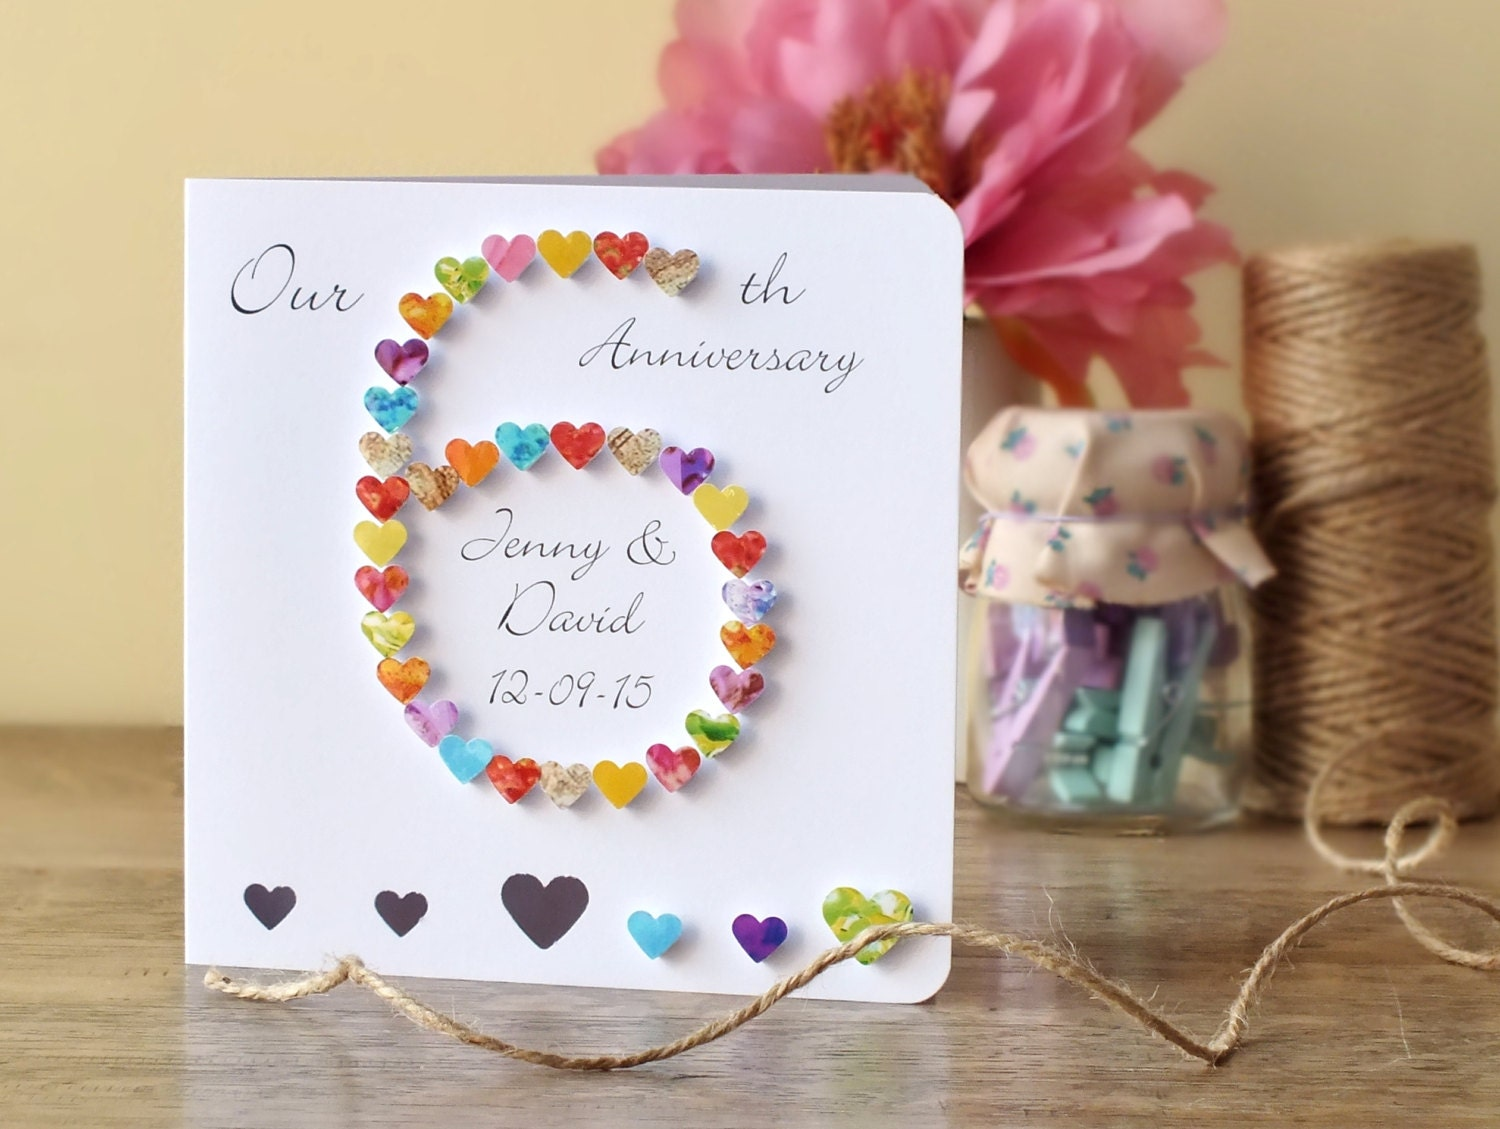 6 Year Wedding Anniversary Gift Ideas For Husband : Sixth Wedding Anniversary Gift Ideas For Him - unjourmonbebeviendra ...